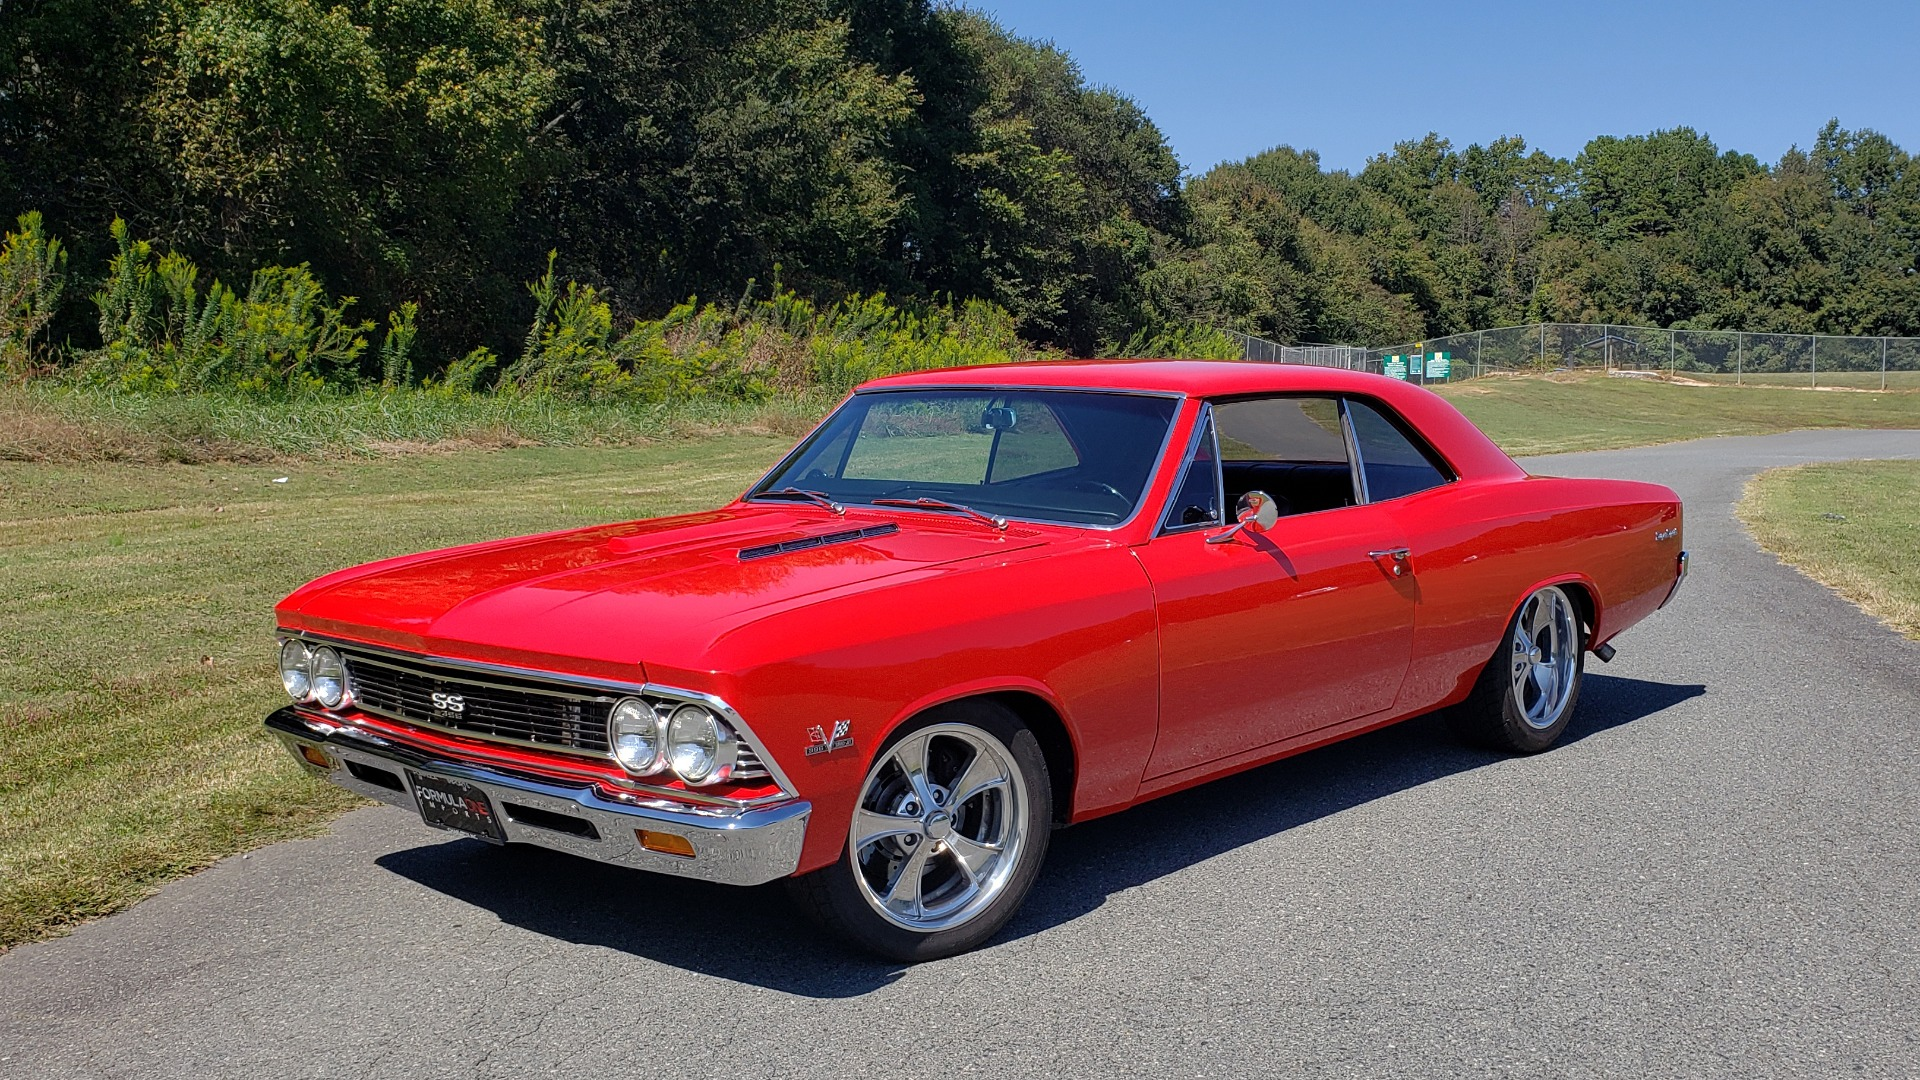 Used 1966 Chevrolet CHEVELLE SS 396 CUSTOM RESTO-MOD / 4-SPEED MANUAL / 12-BOLT REAR for sale $79,999 at Formula Imports in Charlotte NC 28227 1